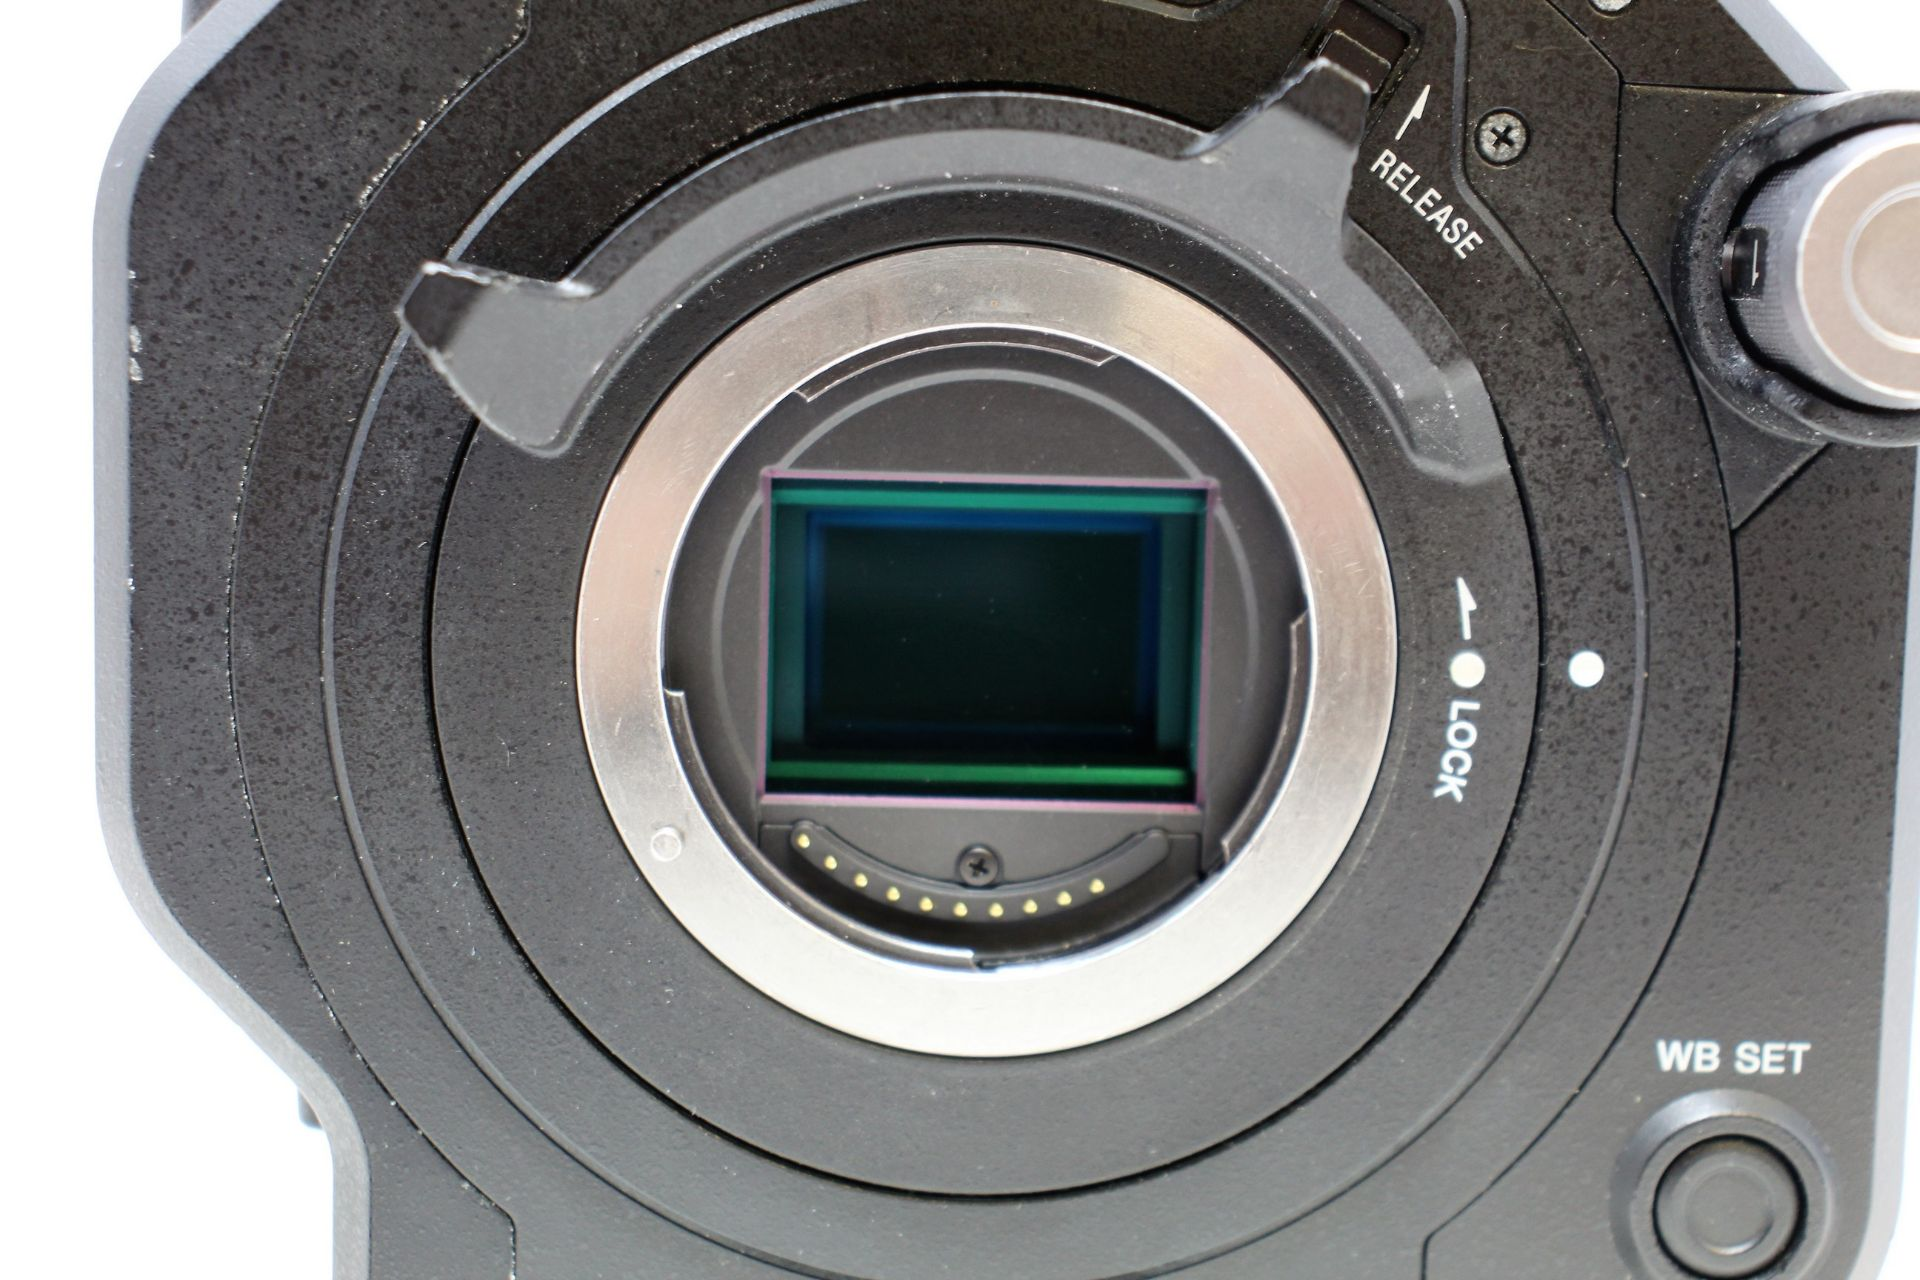 A pre-owned Sony PXW-FS7 II XDCAM 4K Super 35 E-mount Camera Body with Grip and LCD Monitor (M/N: - Image 8 of 33